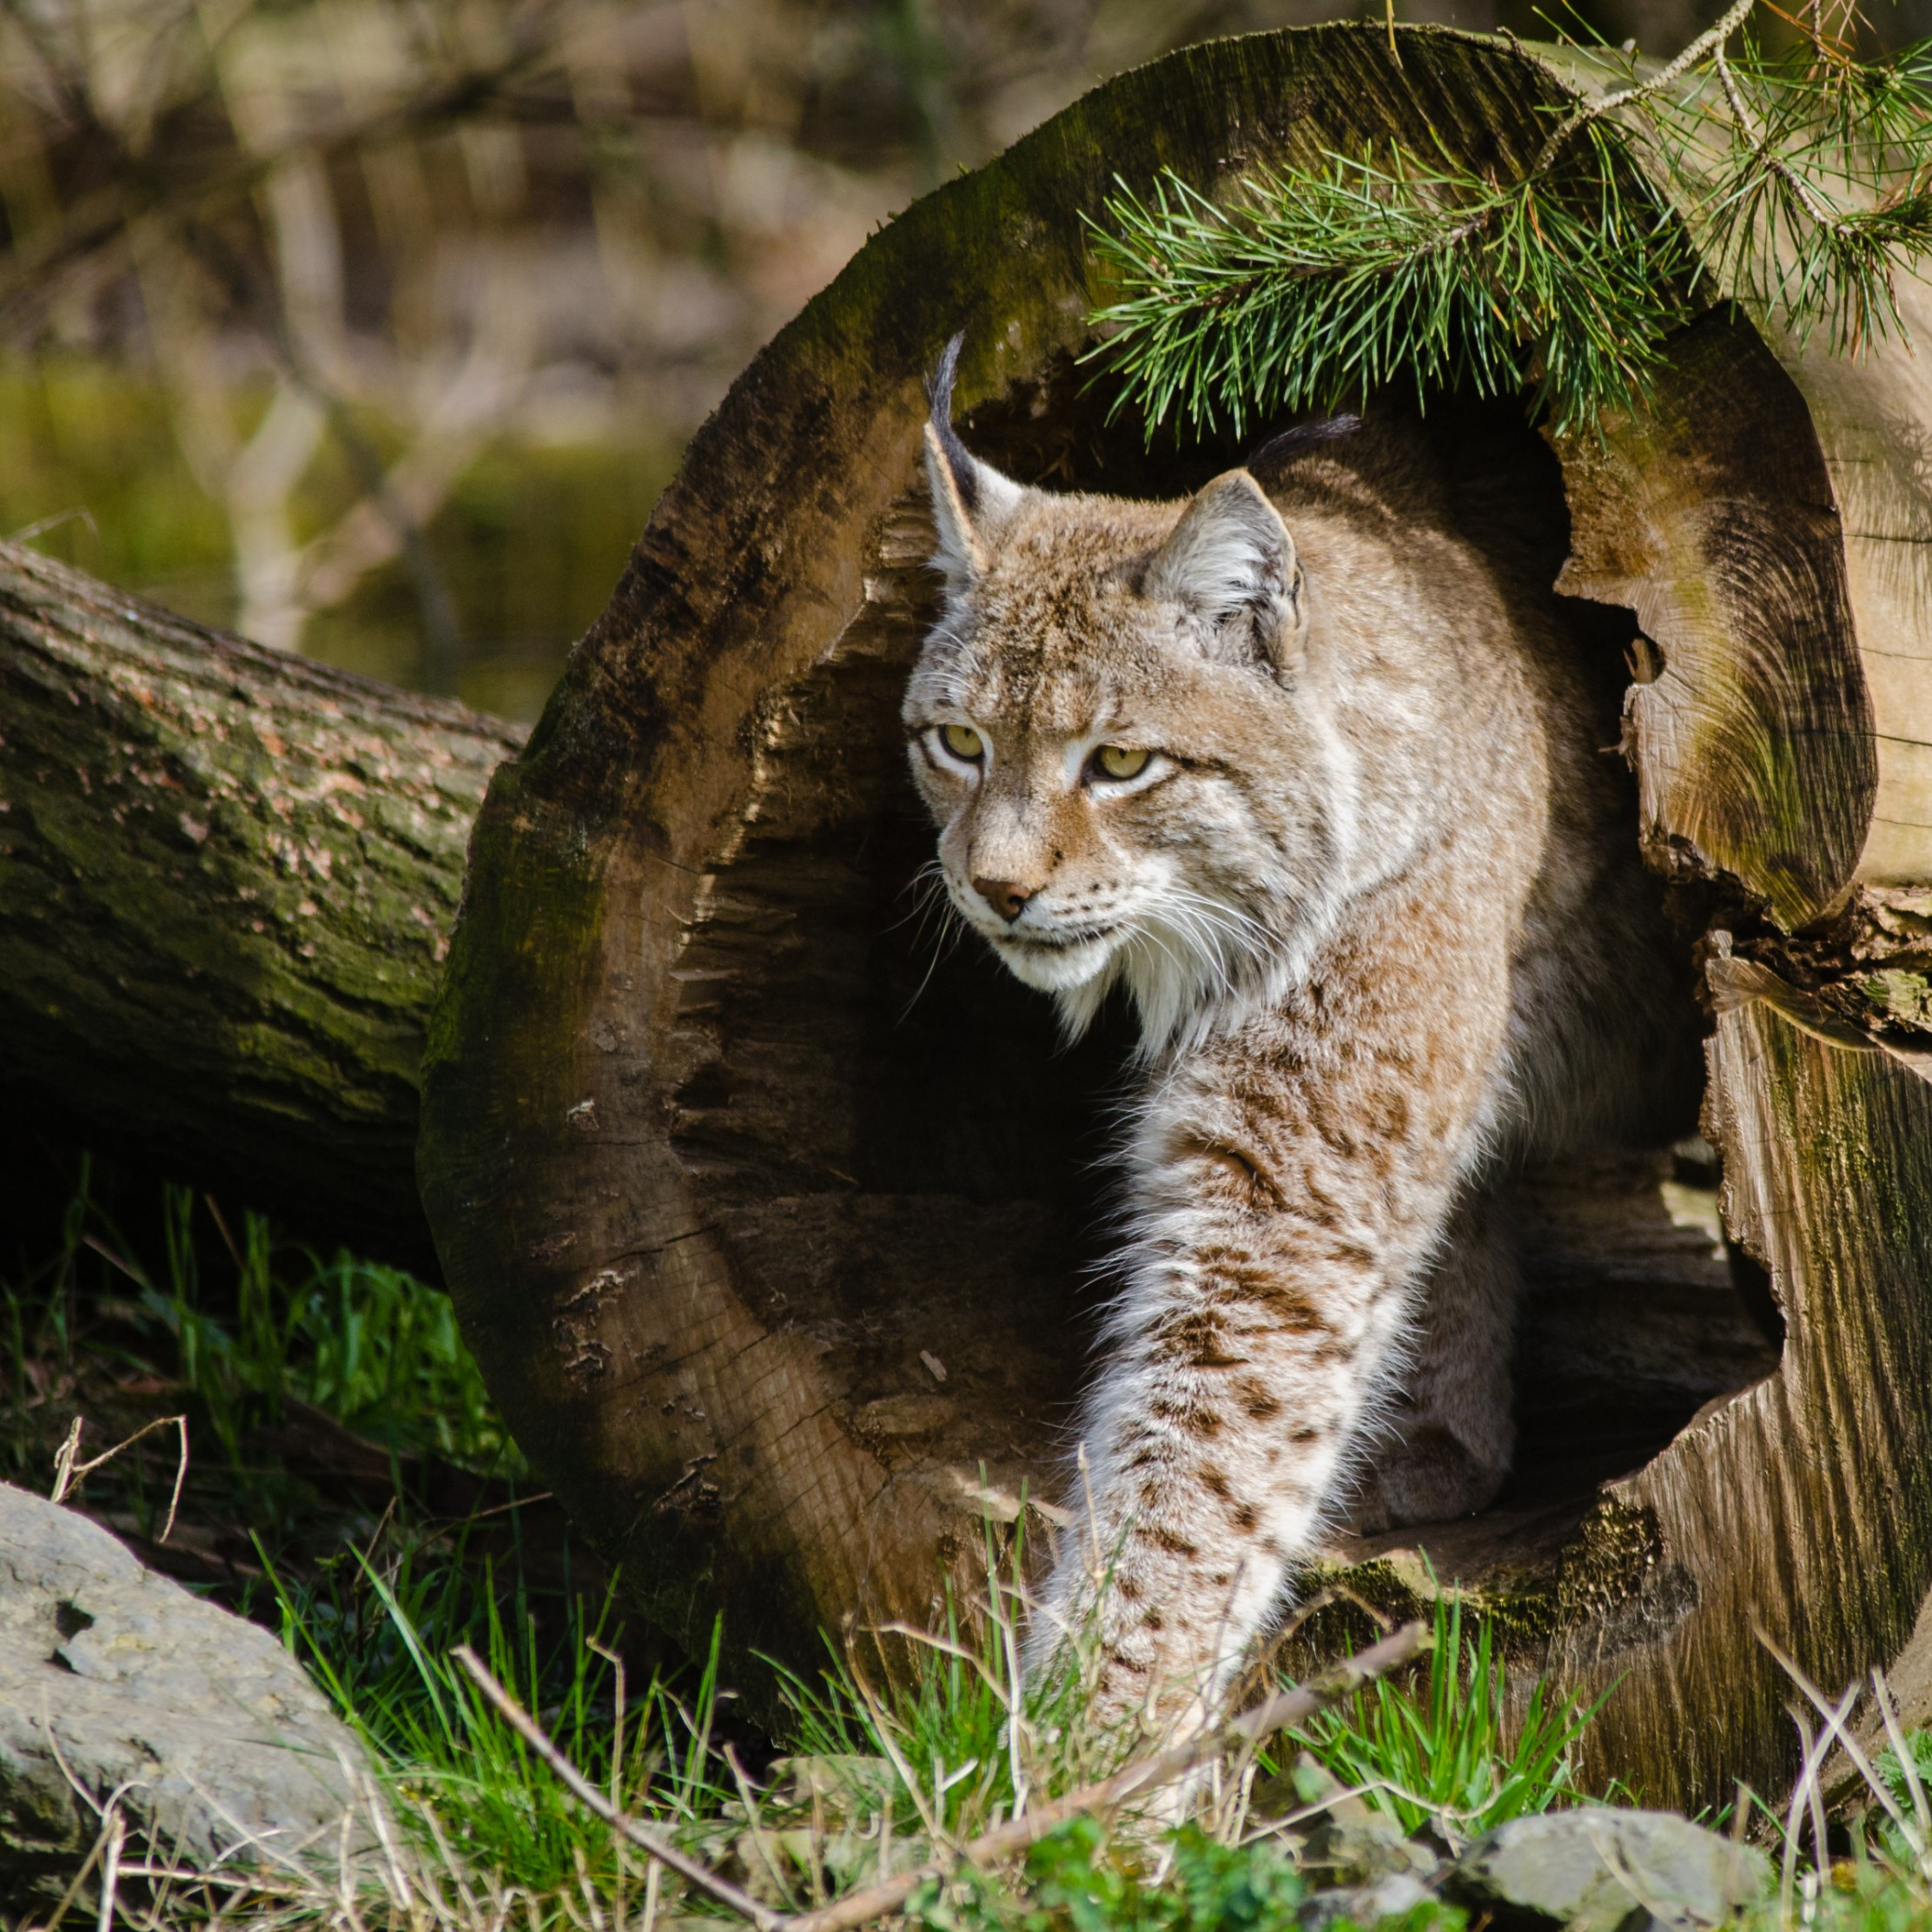 Lynx at the Zoo wallpaper 2224x2224